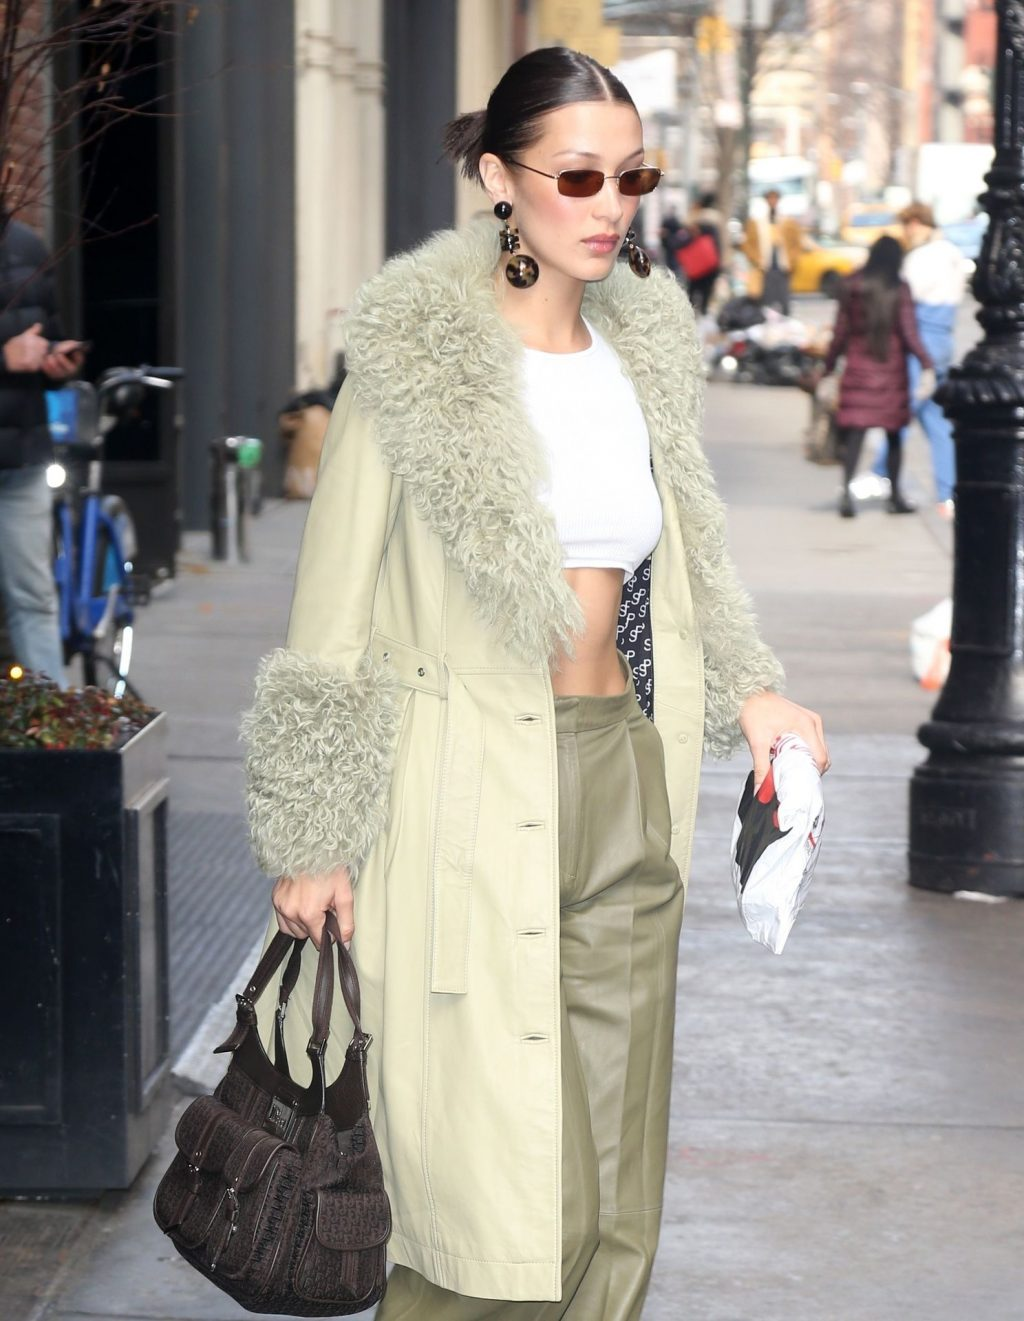 Bella Hadid See through The Fappening Blog 39 1024x1321 - Braless Bella Hadid Arrives at the Park Avenue Armory for the Marc Jacobs Fashion Show (59 Photos)